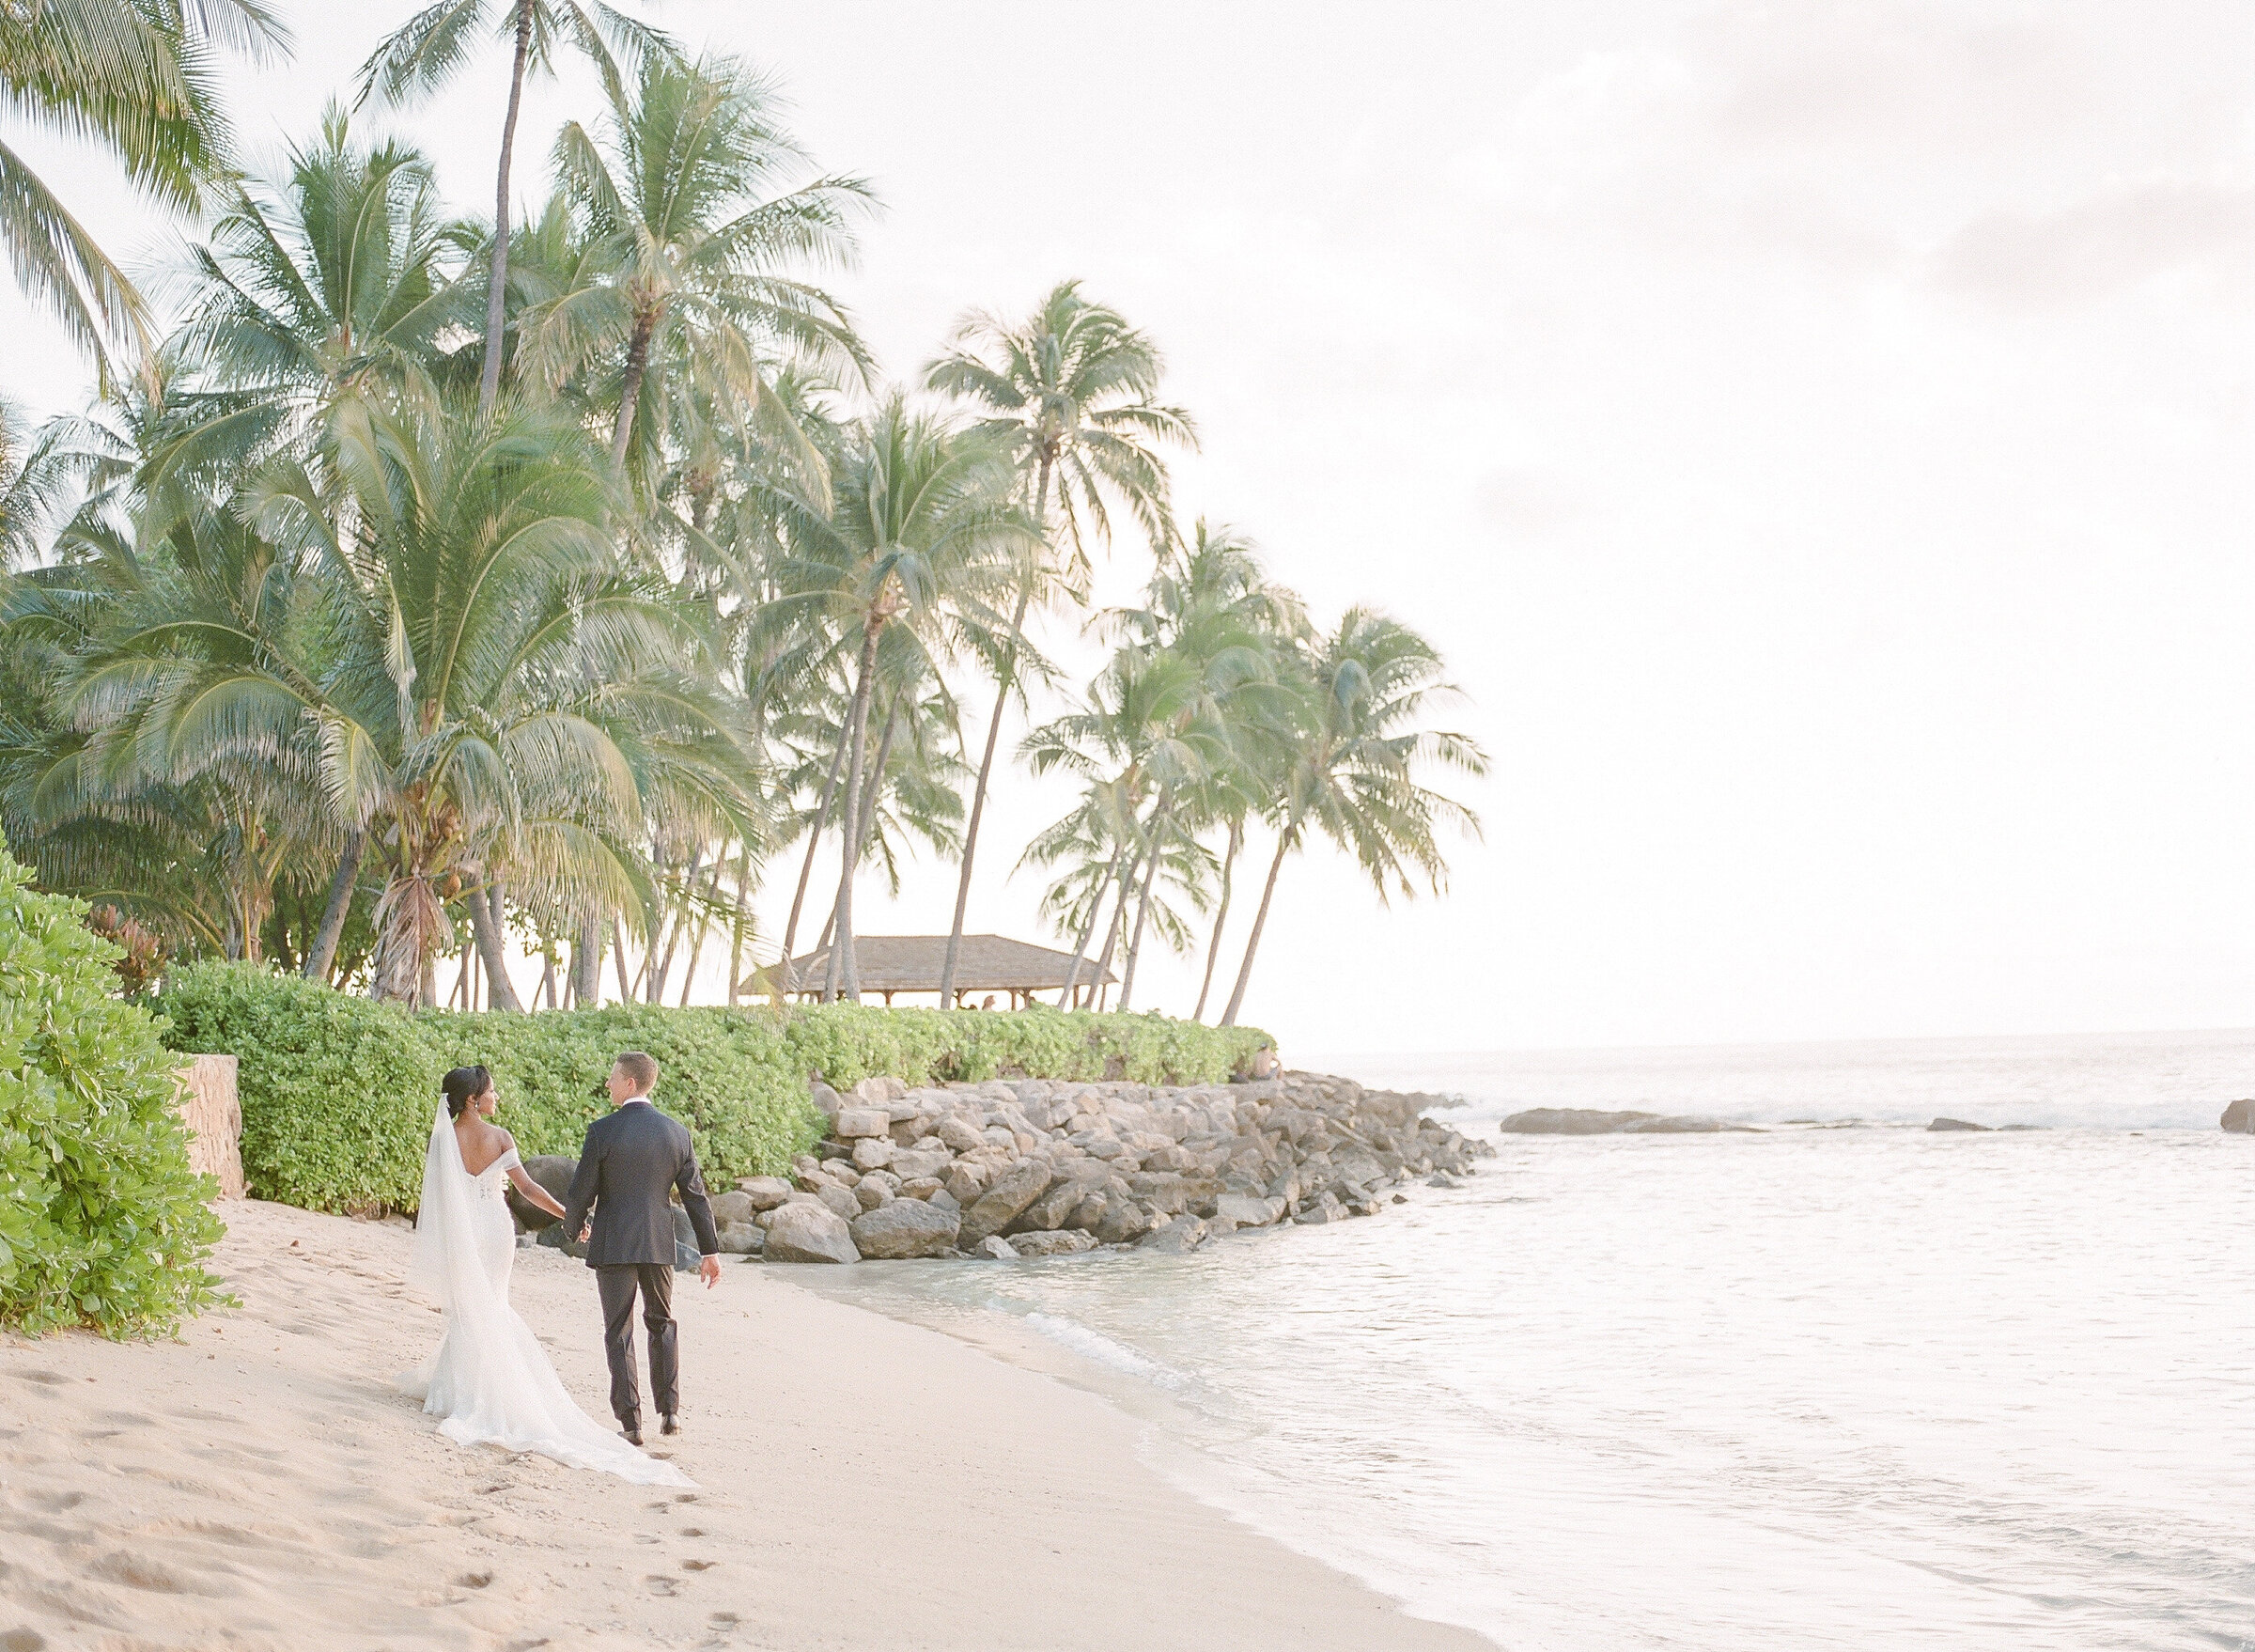 Vanessa and Nathan Wedding - Lanikuhonua - Kerry Jeanne Photography (6)